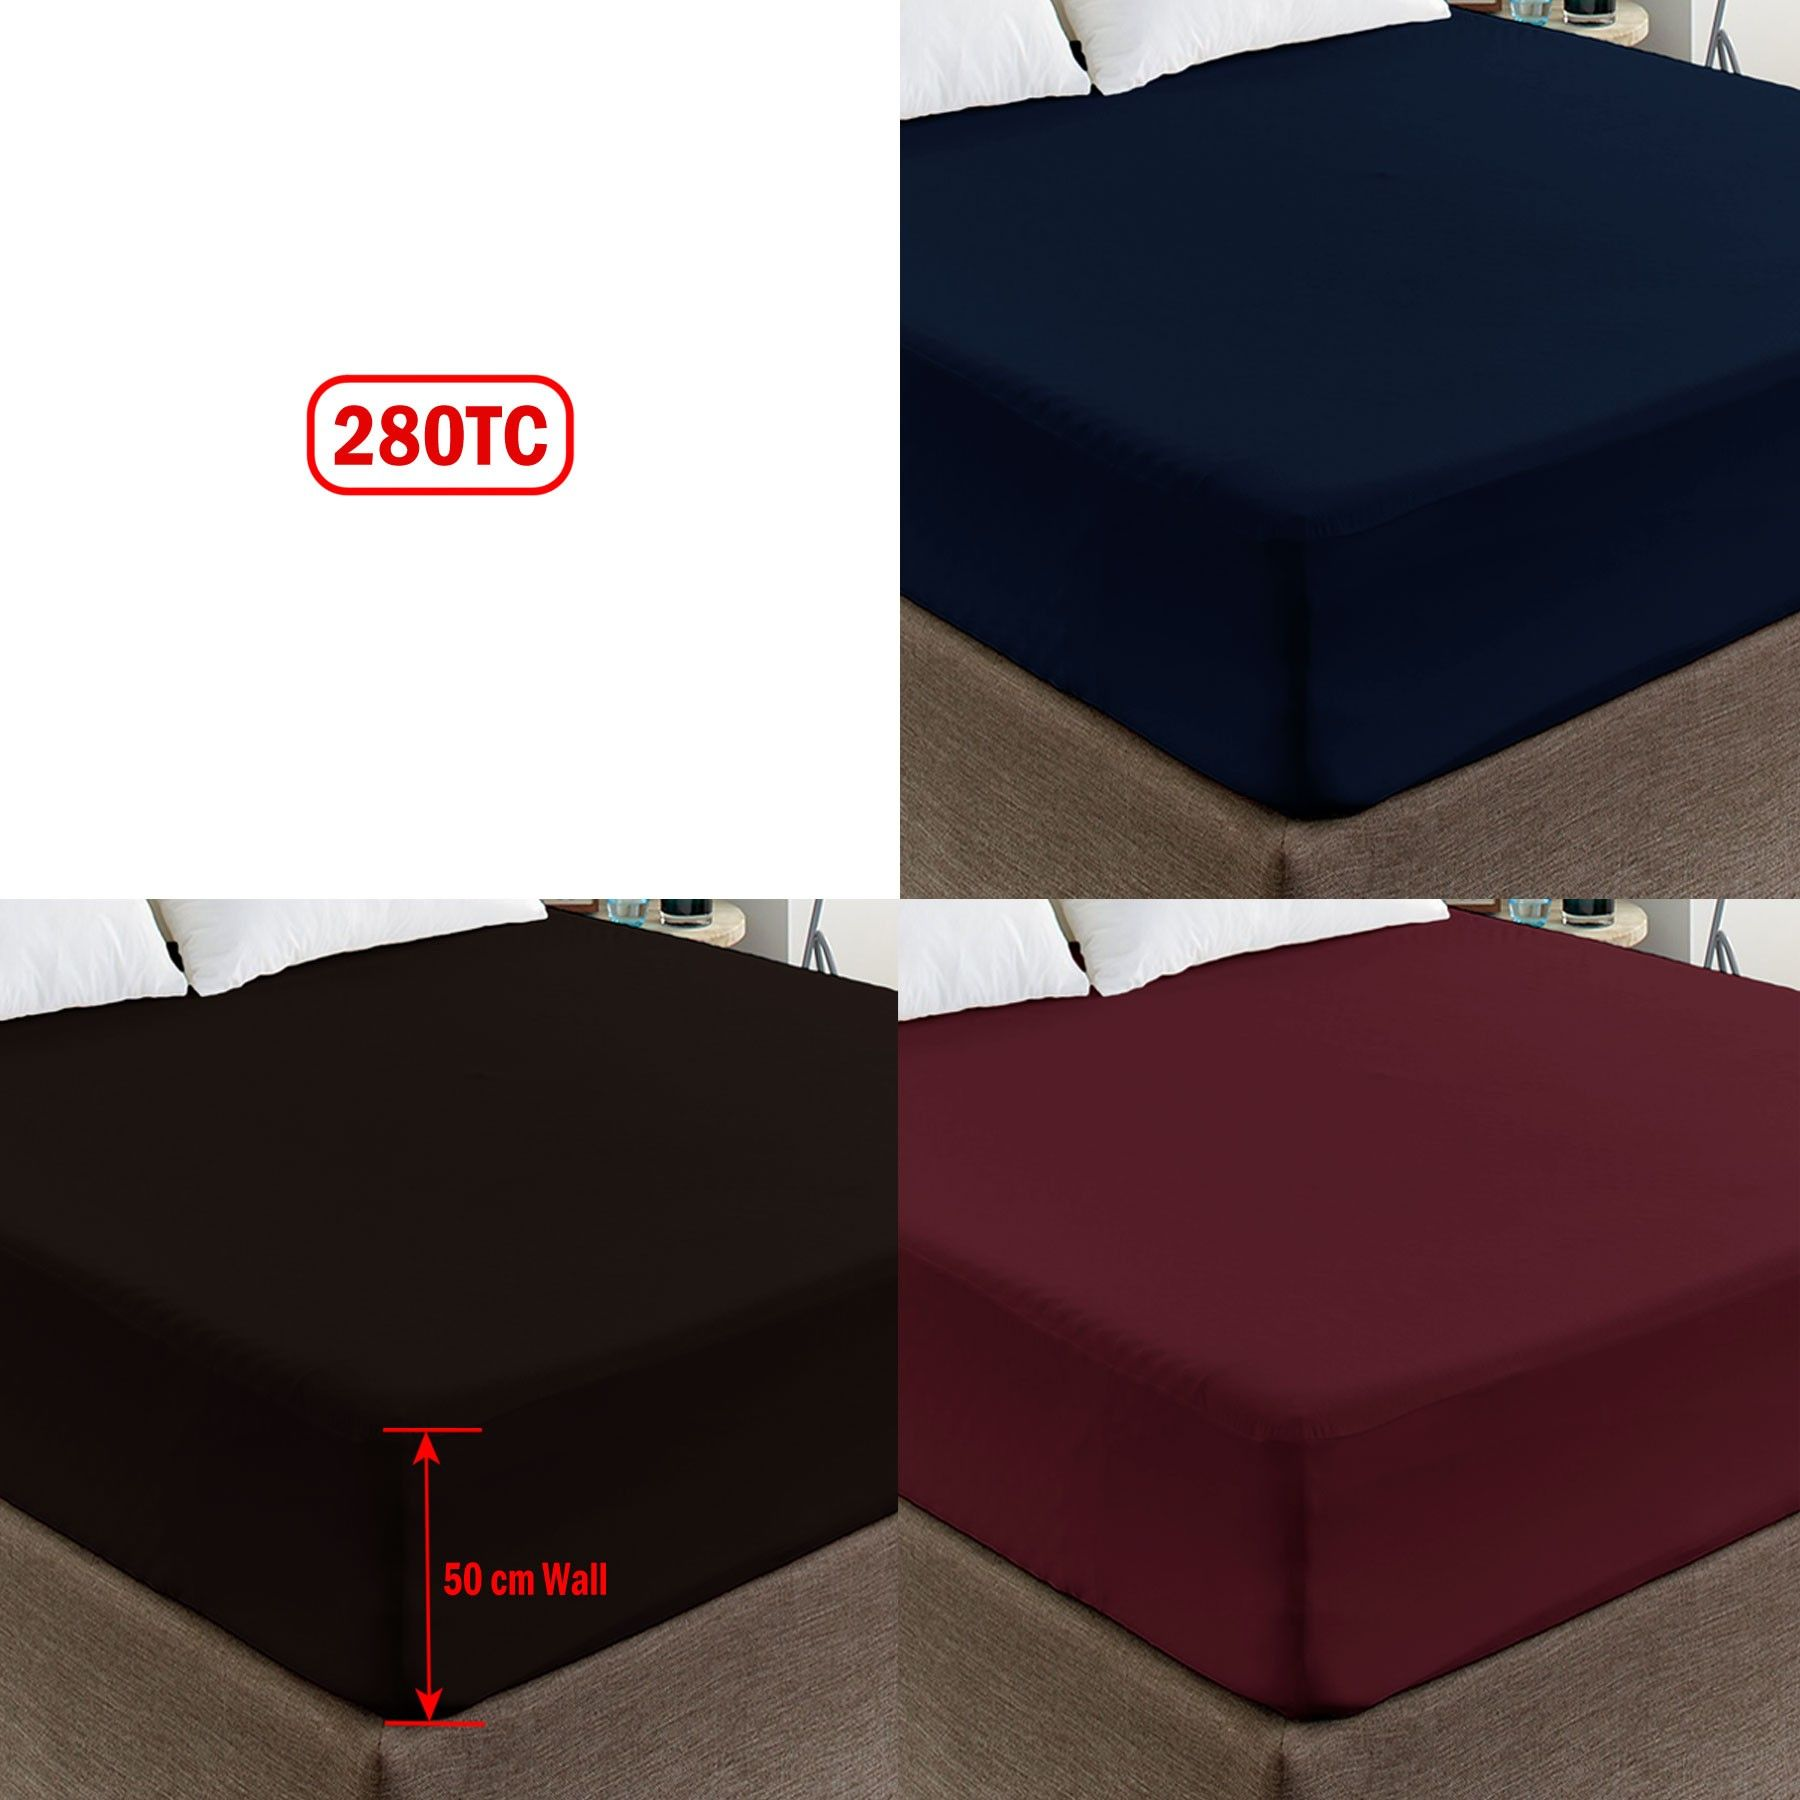 280tc polyester cotton percale 50cm wall fitted sheet